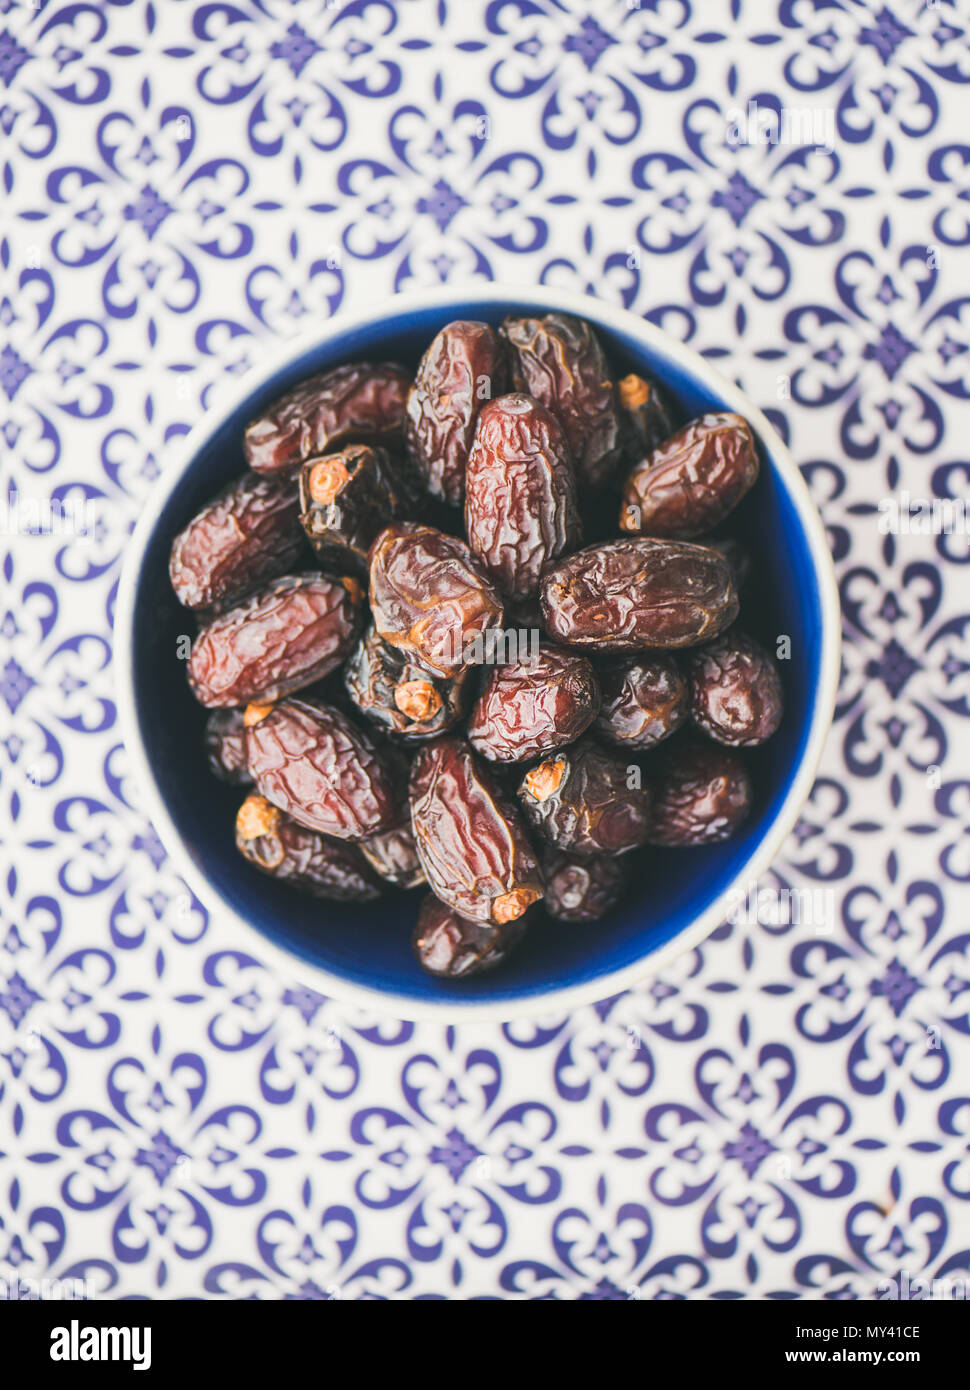 Dates for Ramadan iftar - Stock Image